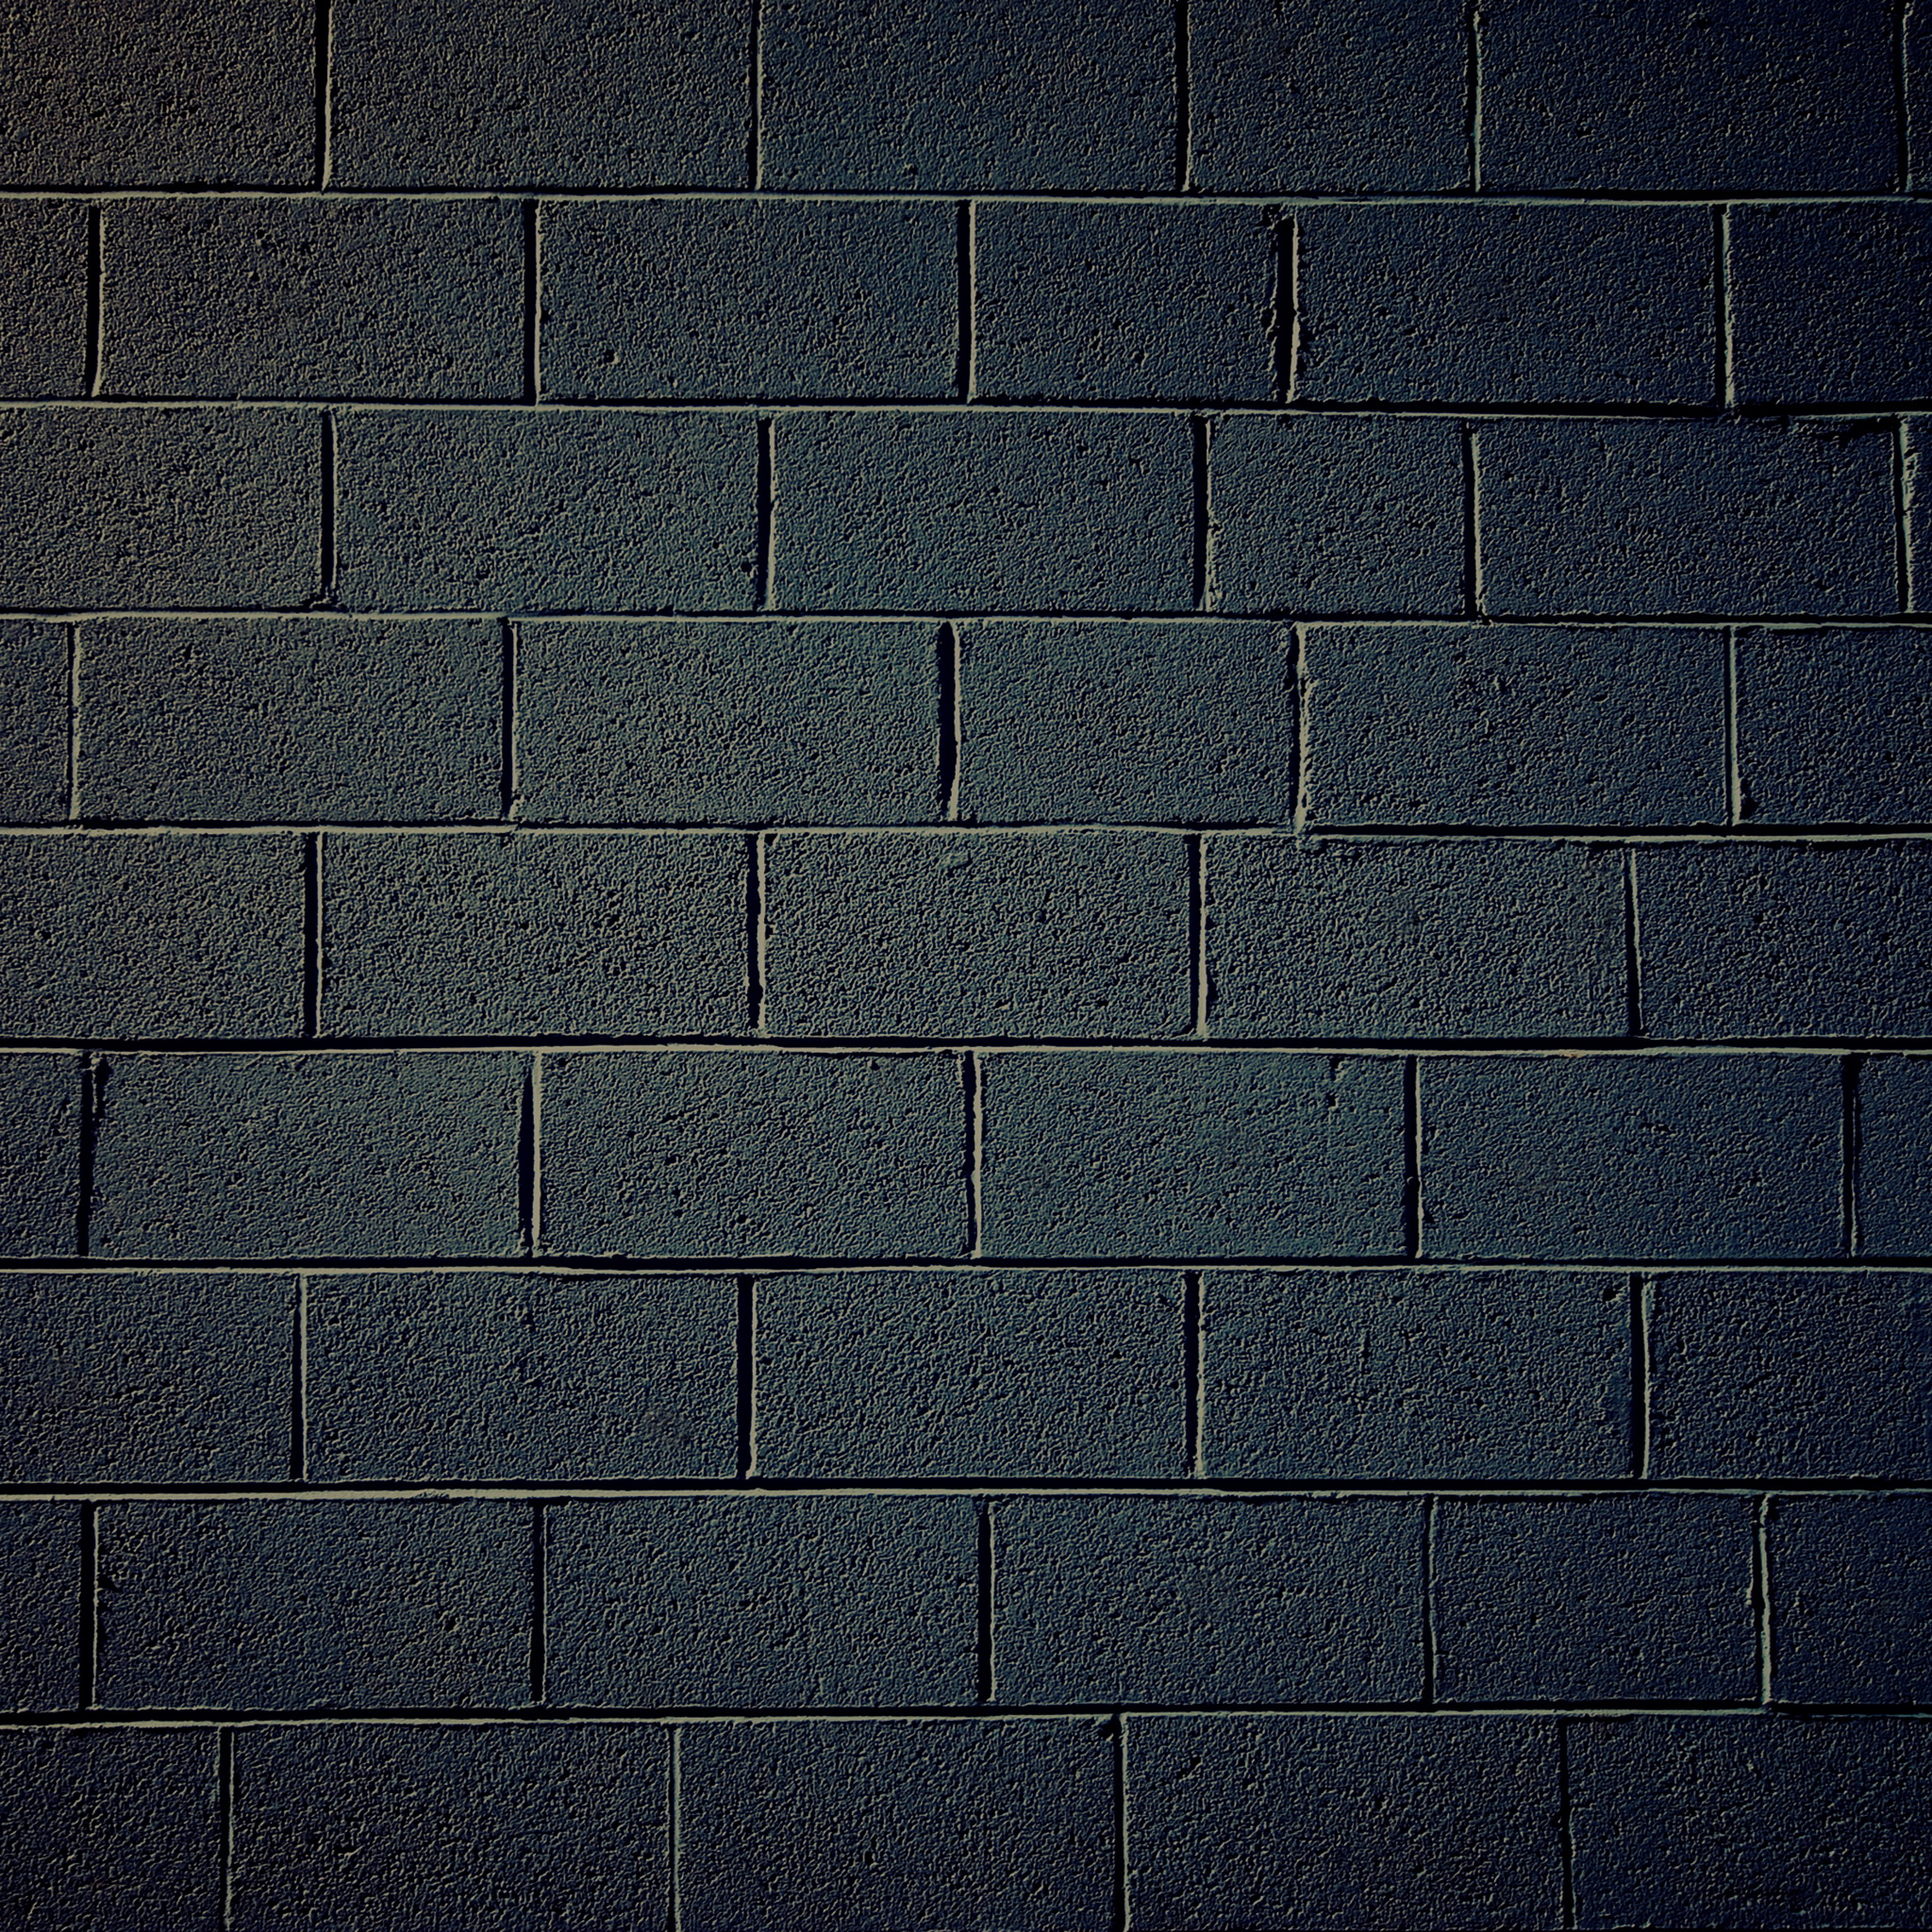 Brick wall Today's new iPad wallpapers 16/12/2012 » new-ipad